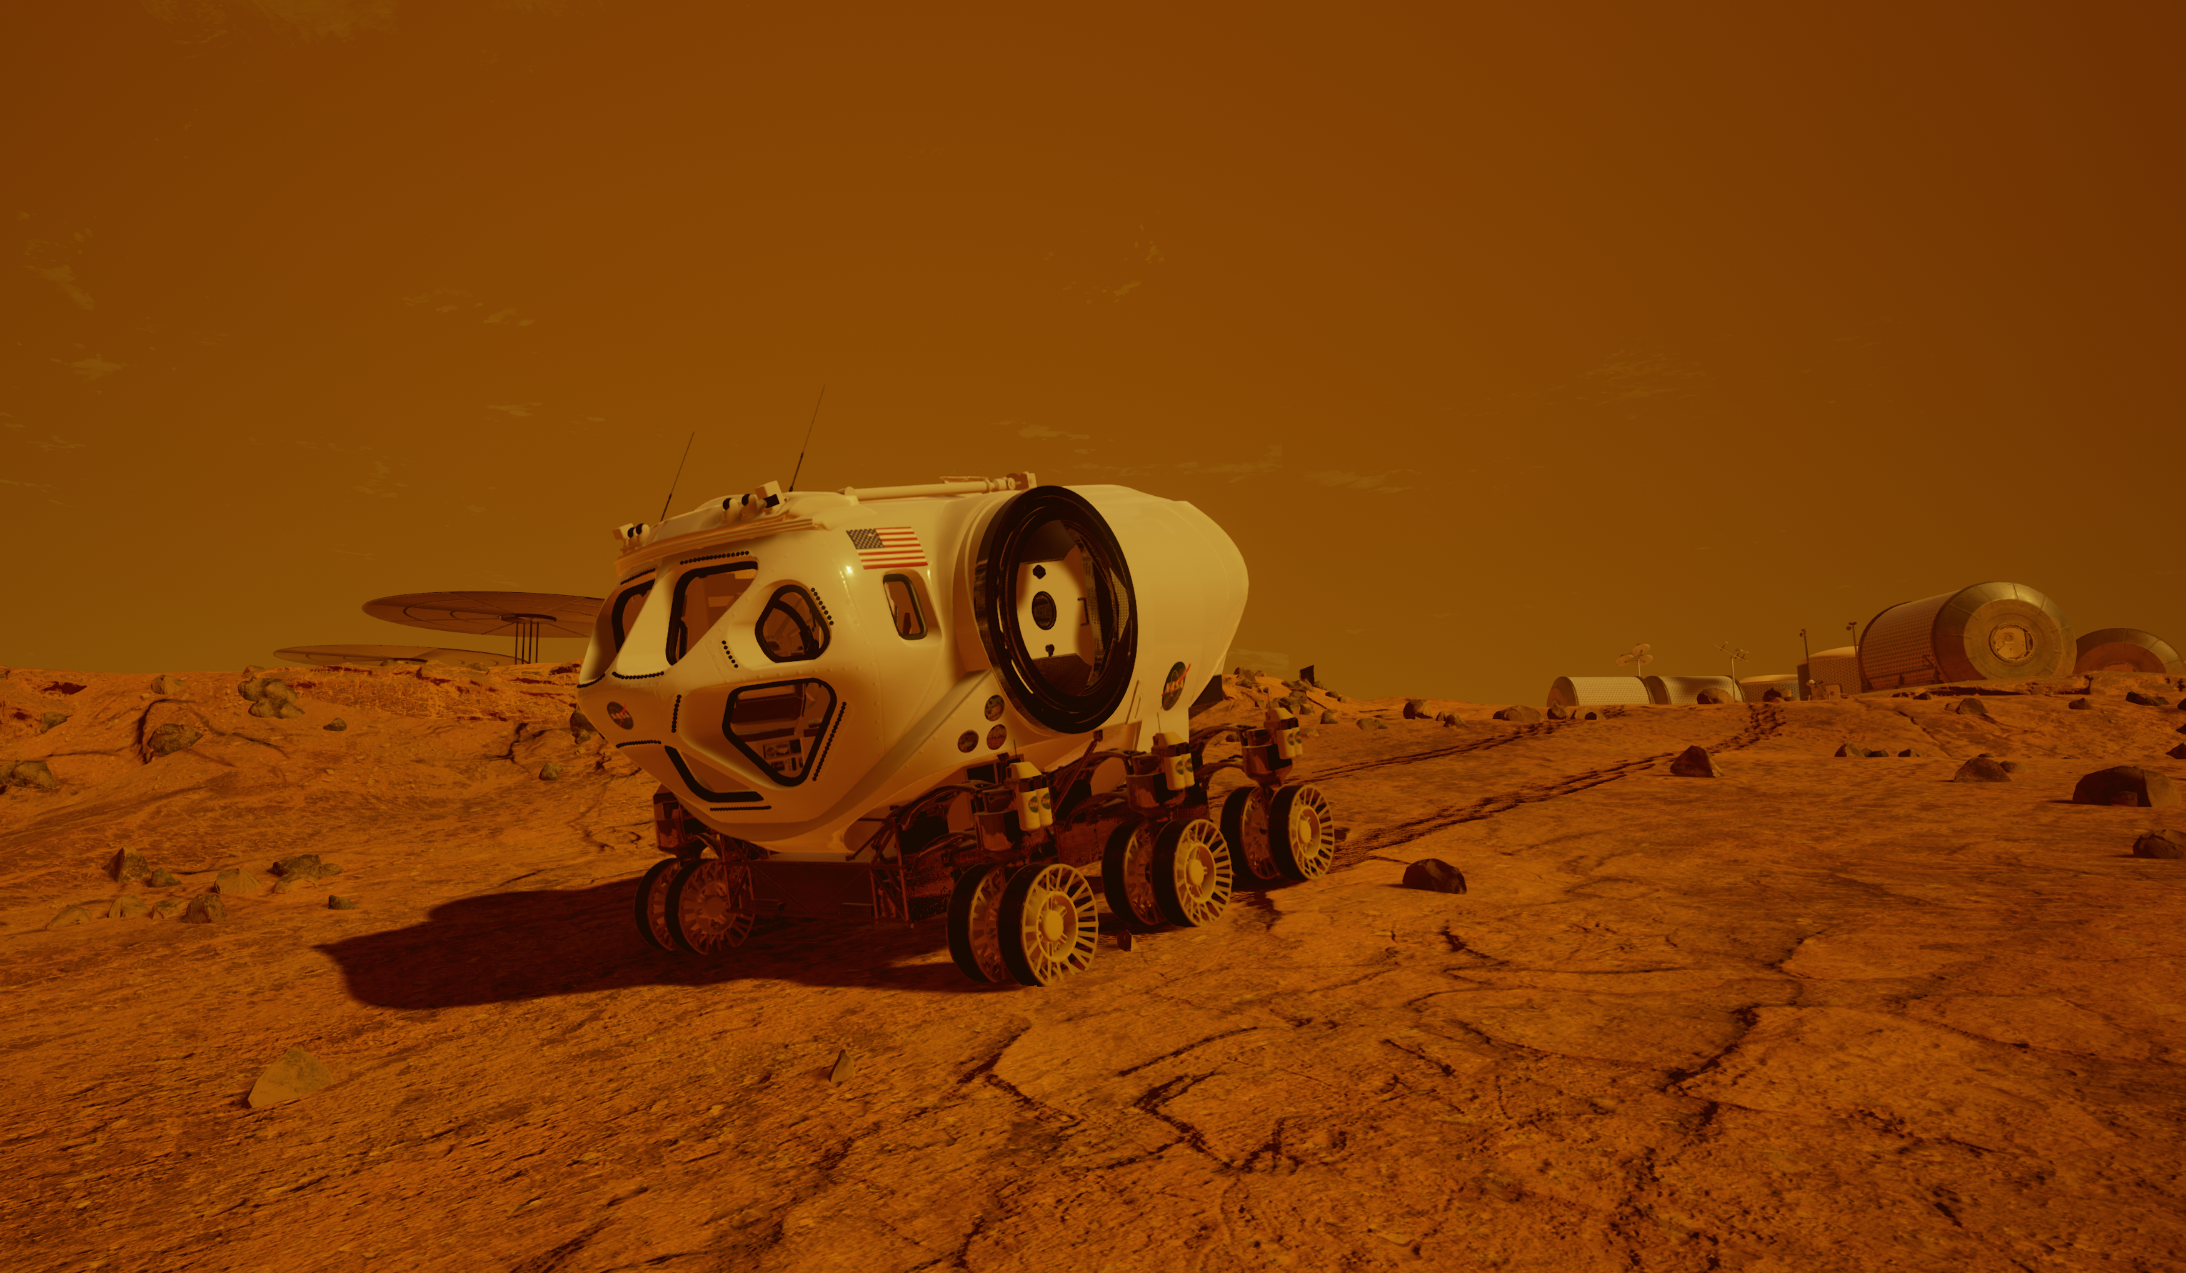 outoneva iii Points Festival to debut VR experience transporting festival goers to Mars